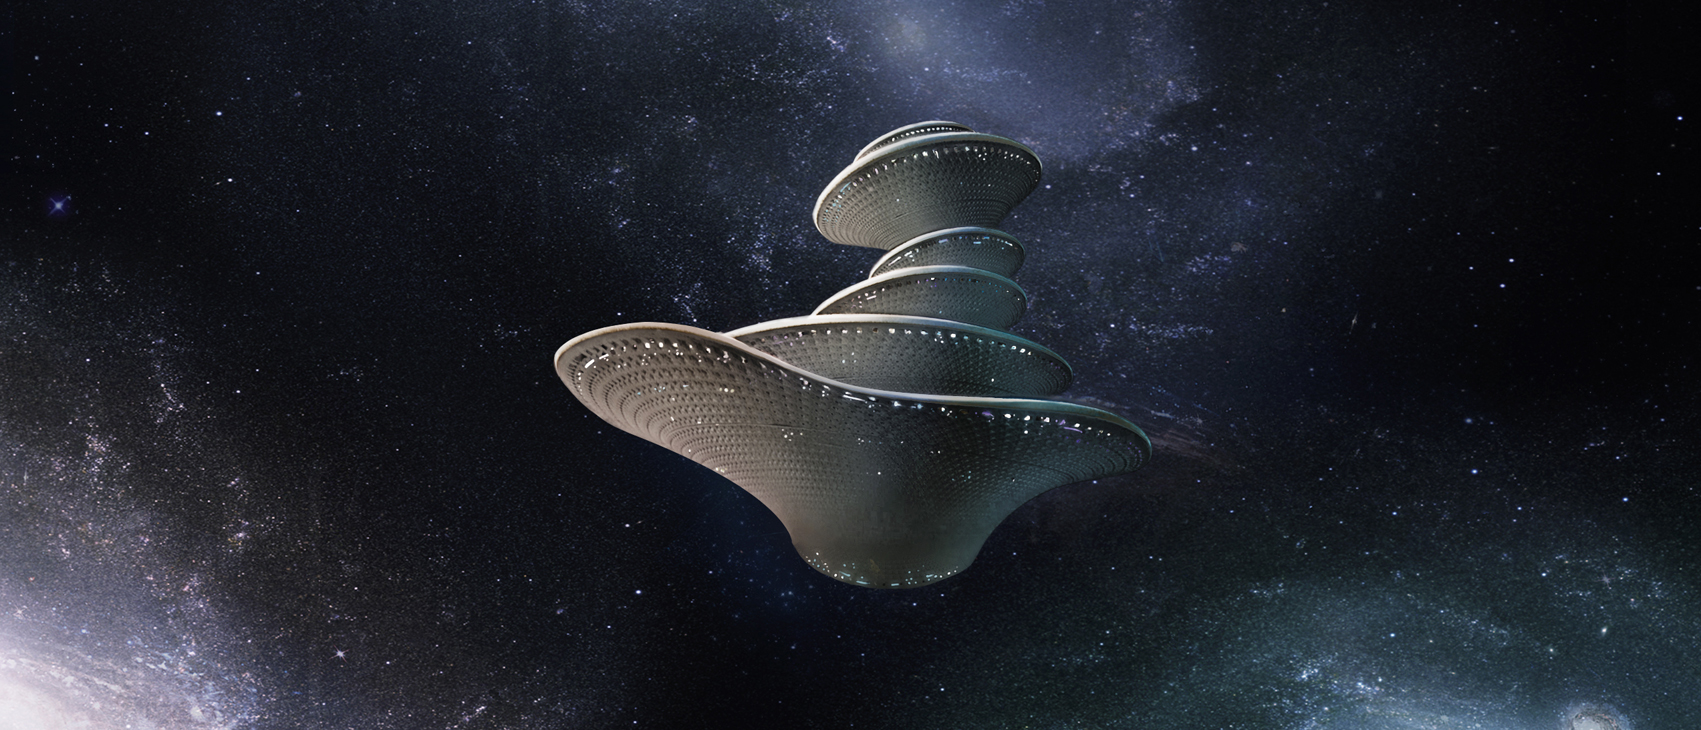 United Galaxy Ship